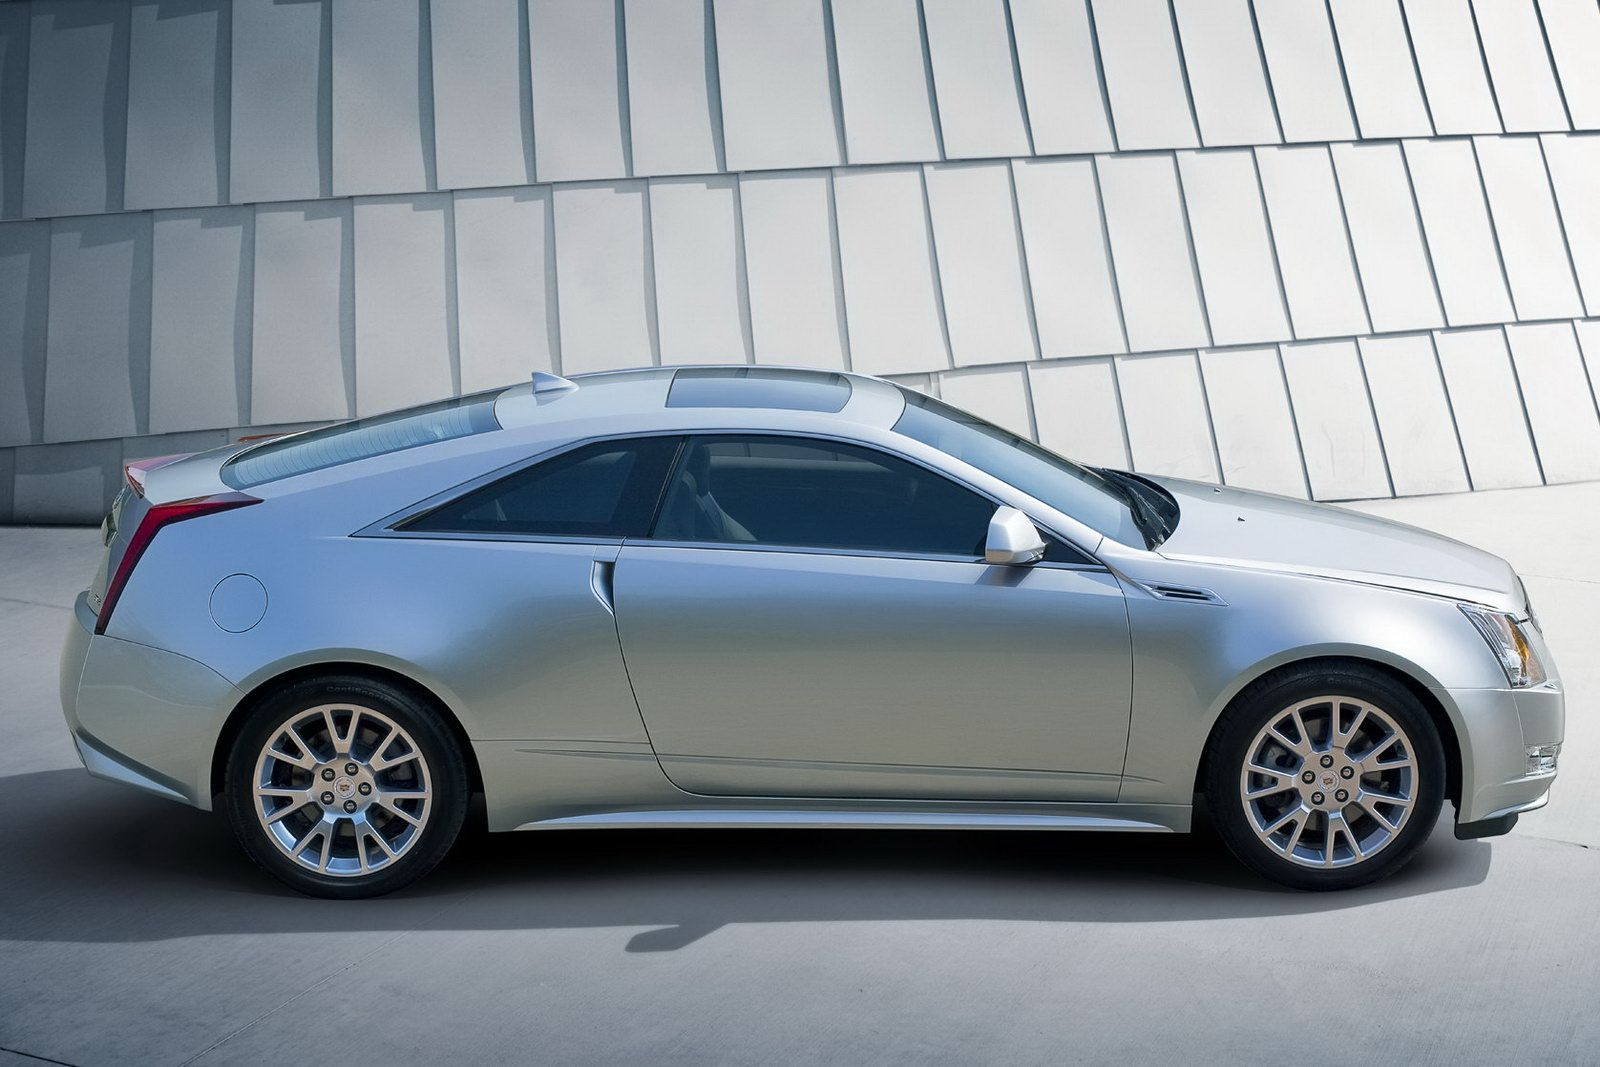 new 2011 cadillac cts coupe officially revealed details and photos it s your auto world. Black Bedroom Furniture Sets. Home Design Ideas